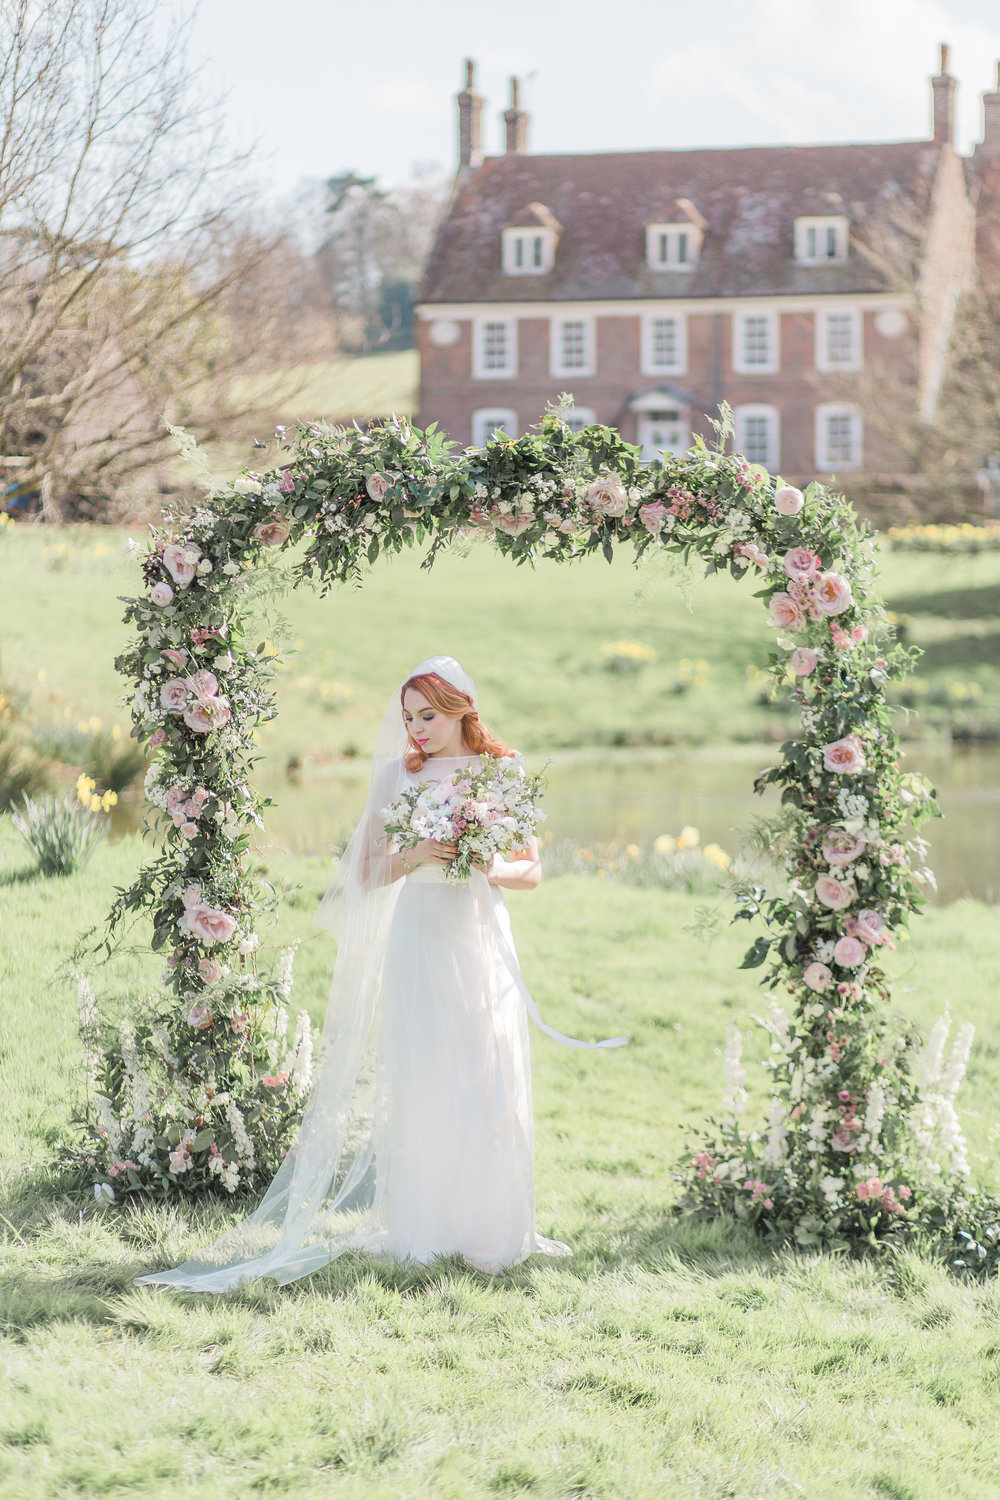 Chafford Park wedding venue Jennifer pinder floristry school in kent